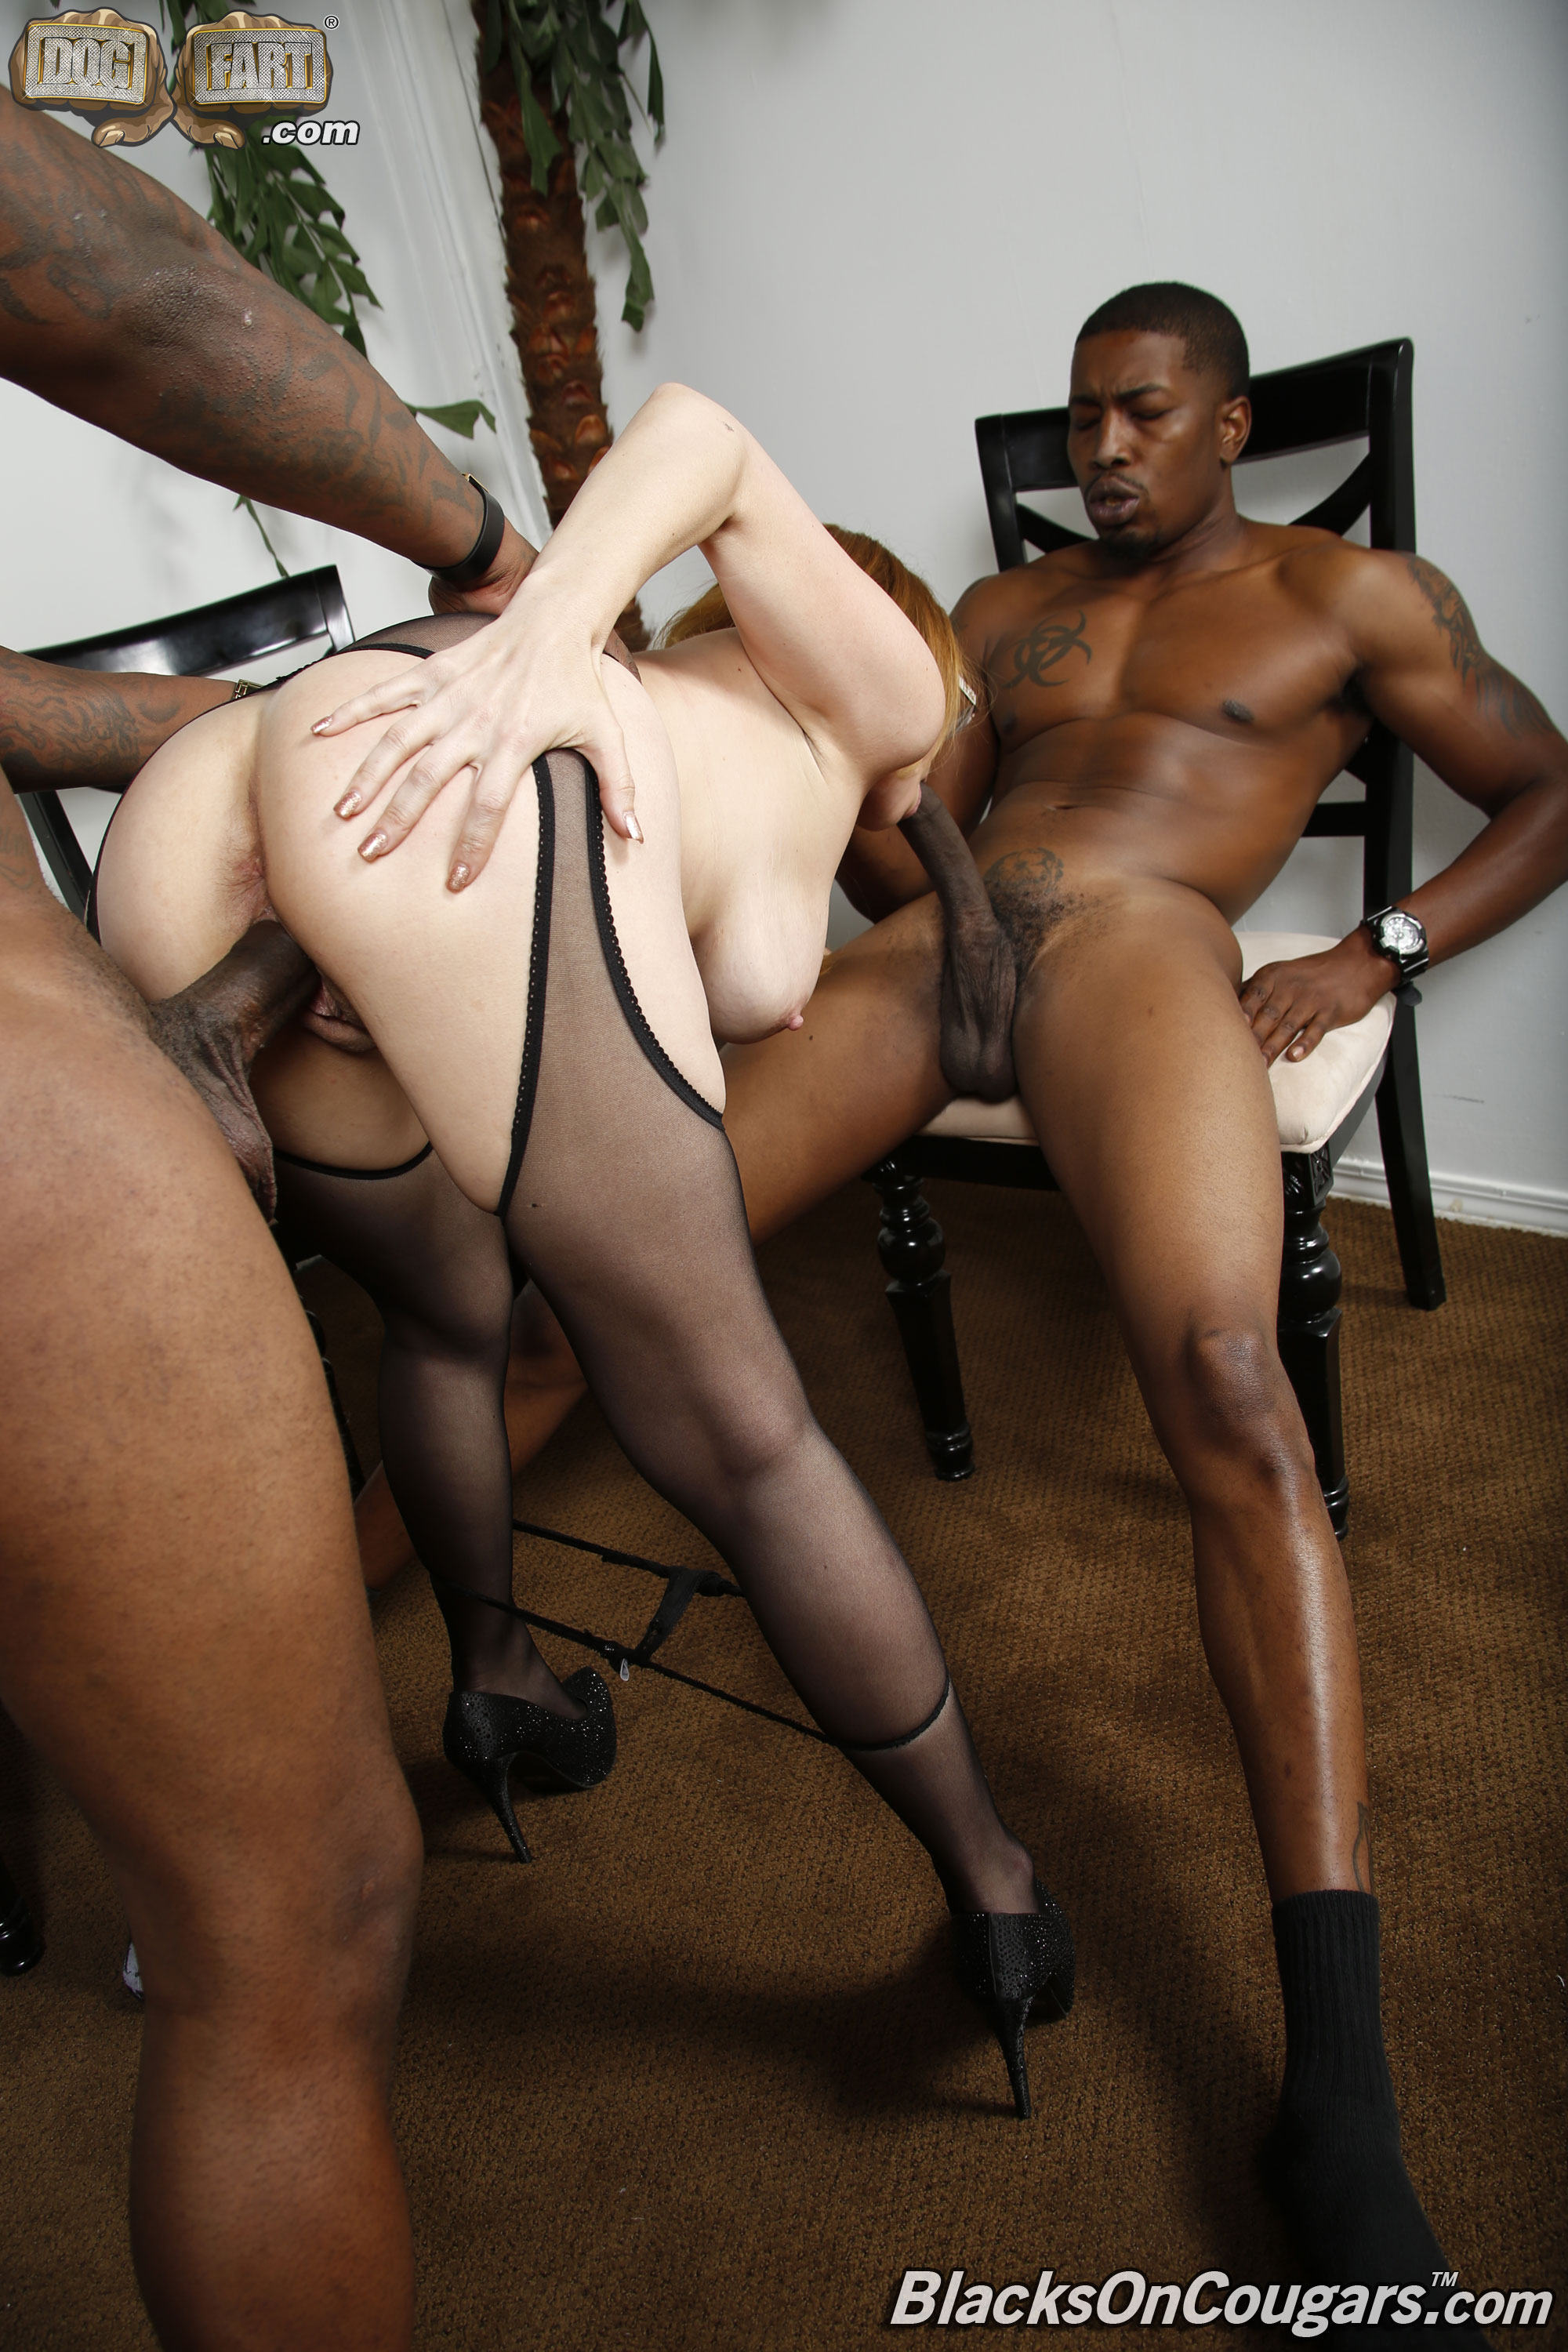 Experienced tara holiday and young dick 8